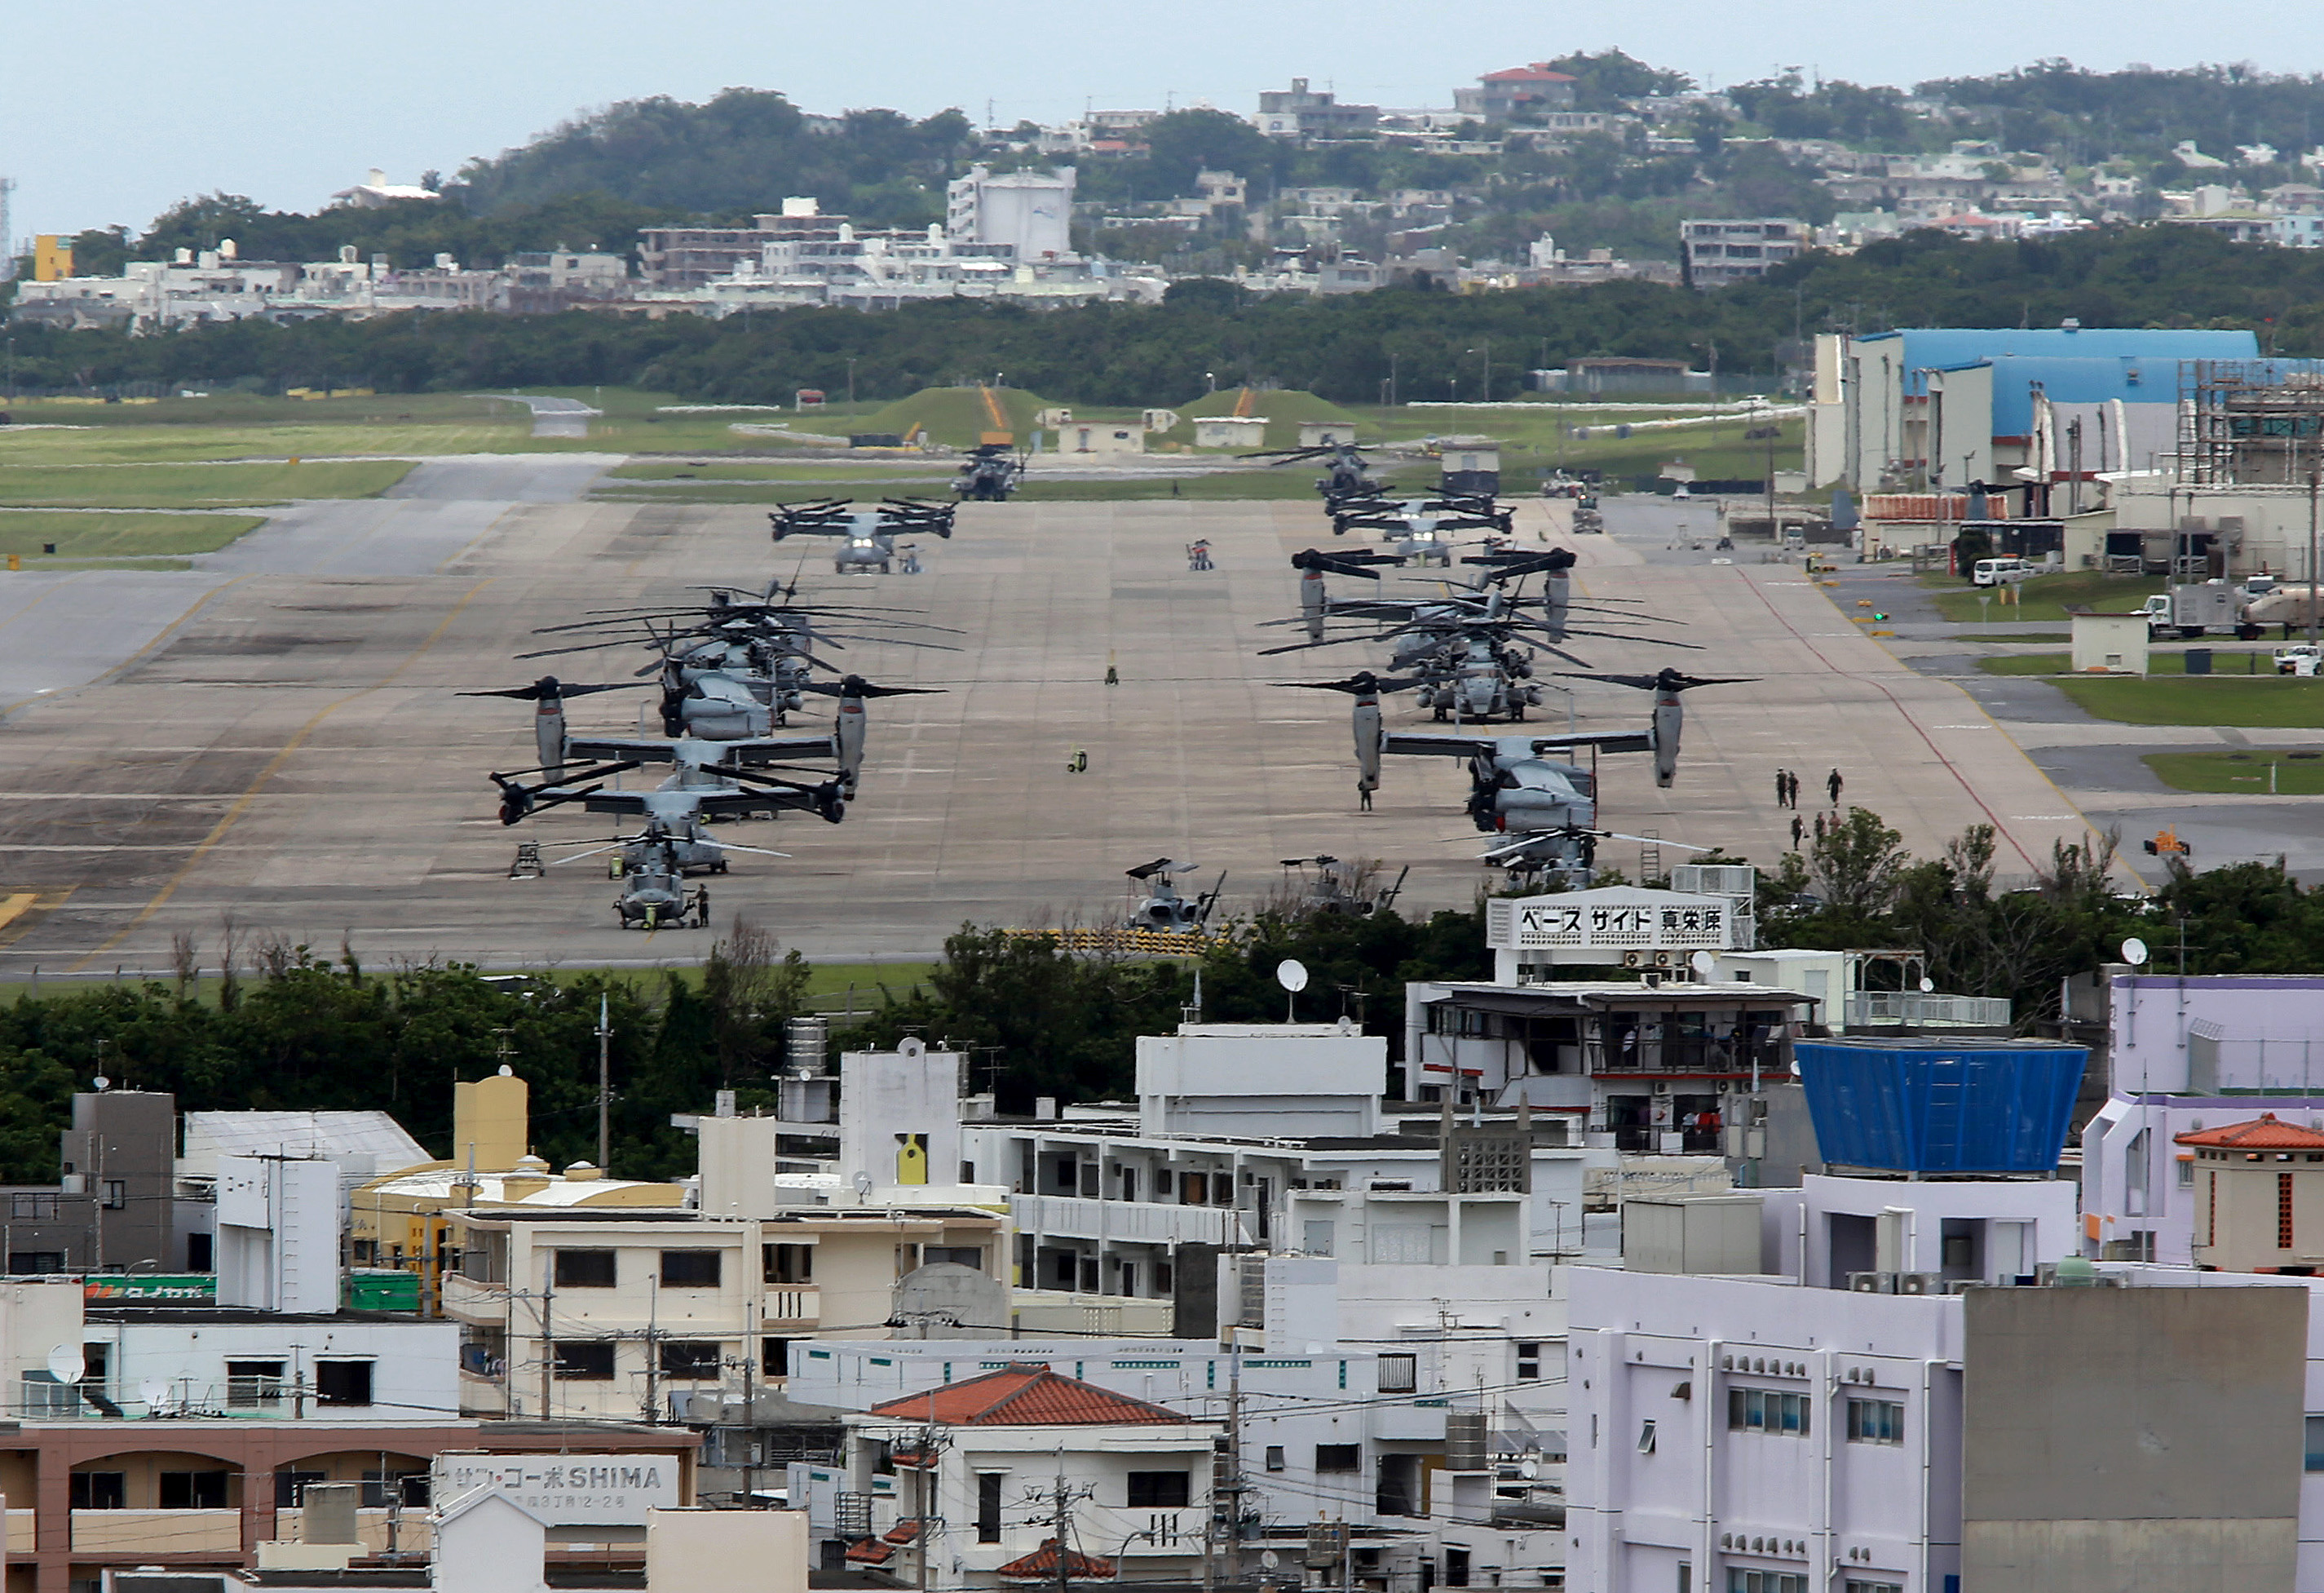 epa04756429 US Marine Corps MV-22 Osprey aircrafts are sitting on the tarmac at US Marine Corps Air Station Futenma surrounded by overcrowded residential areas in Ginowan on Okinawa Island, southwestern Japan, 19 May 2015. Japanese government just announced on May 12 that CV-22 Ospreys would be deployed to the U.S. Air Force's Yokota base on the outskirt of Tokyo. CV-22 Ospreys is for special operations forces, engage in low-altitude and nighttime flights, and the accident rate is three times higher than Marines MV-22 Ospreys. Japanese four local cities' leaders in Tokyo surrounding US Air Force's Yokota Base have expressed deep concern over the deployment of CV-22 Ospreys in 2017, as Pentagon announced on 18 May 2015 it had no plan to change Osprey operations in Japan after a CV-22 Osprey crash in Hawaii killing one and injuring 21 on last weekend.  EPA/HITOSHI MAESHIRO